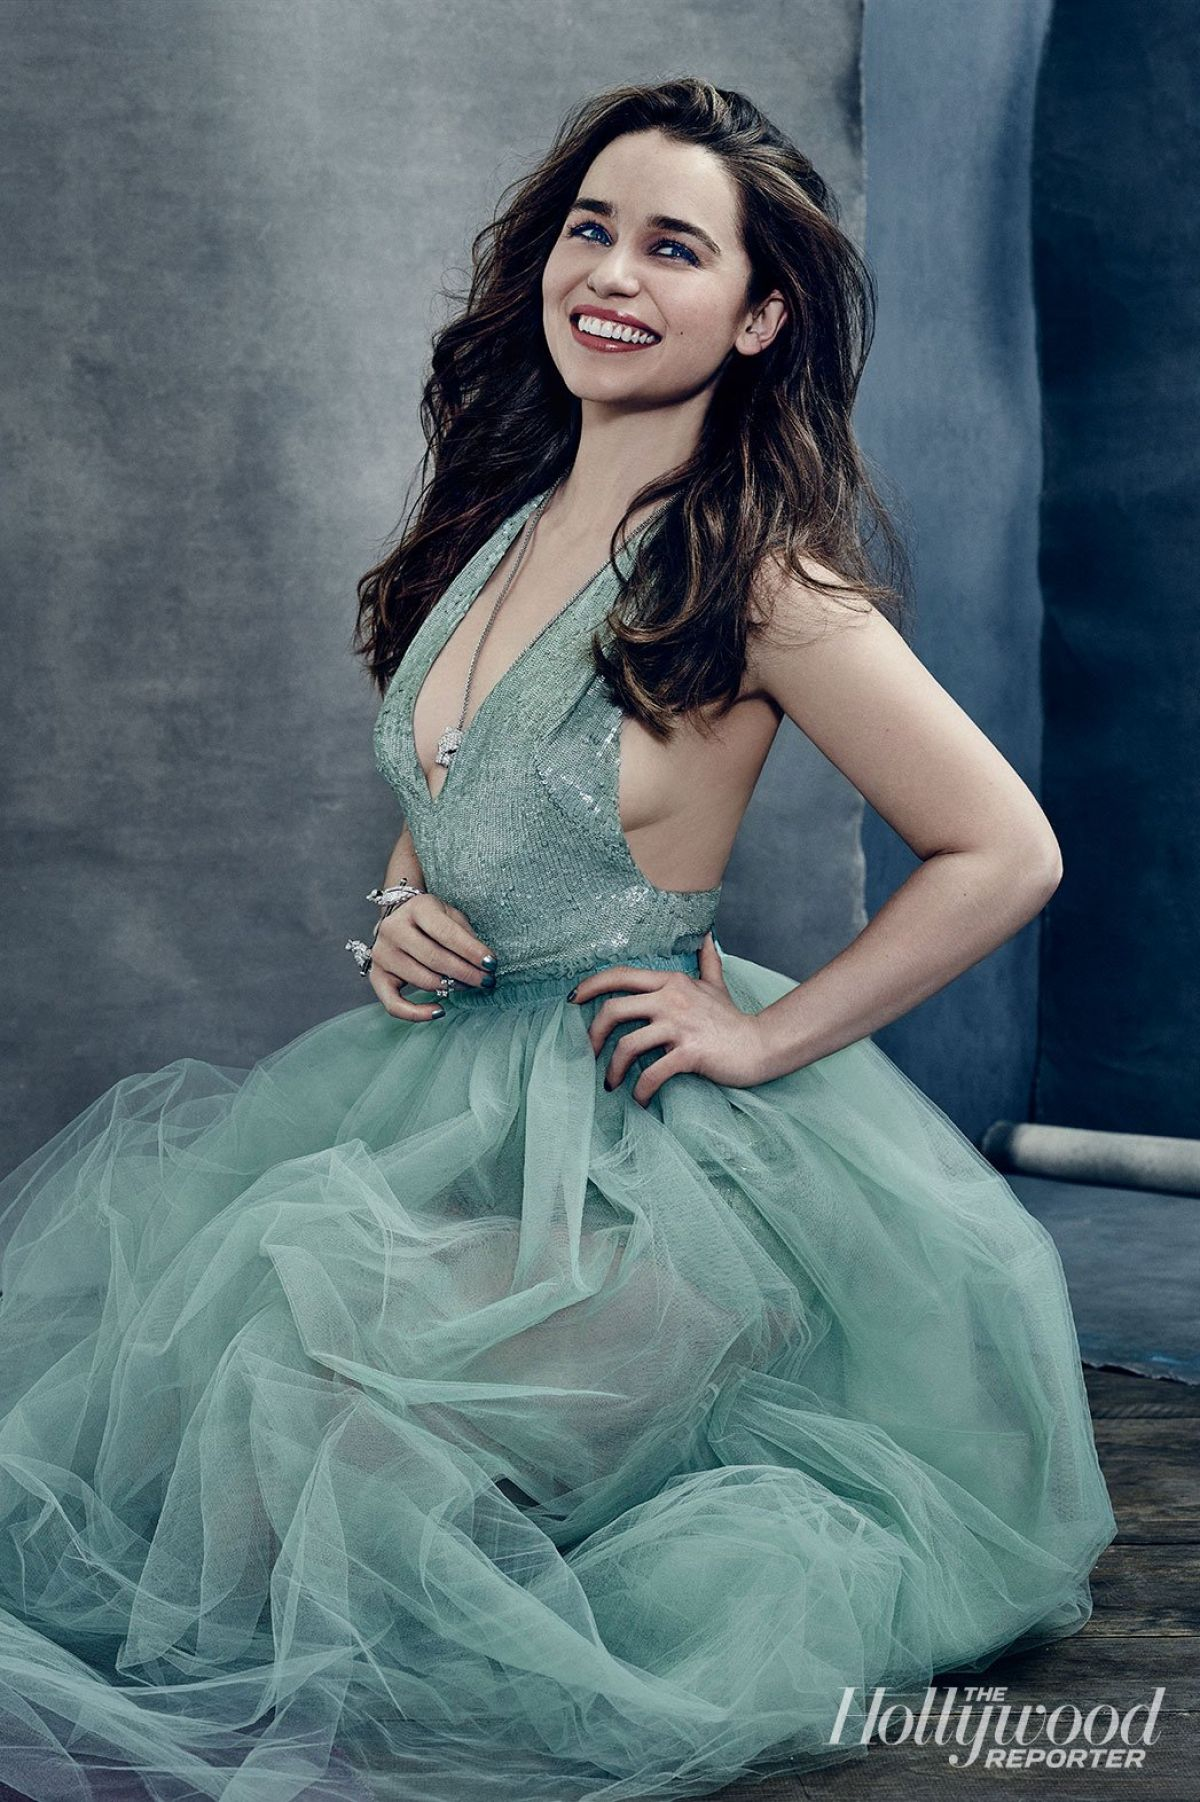 EMILIA CLARKE in The Hollywood Reporter, April 2015 Issue